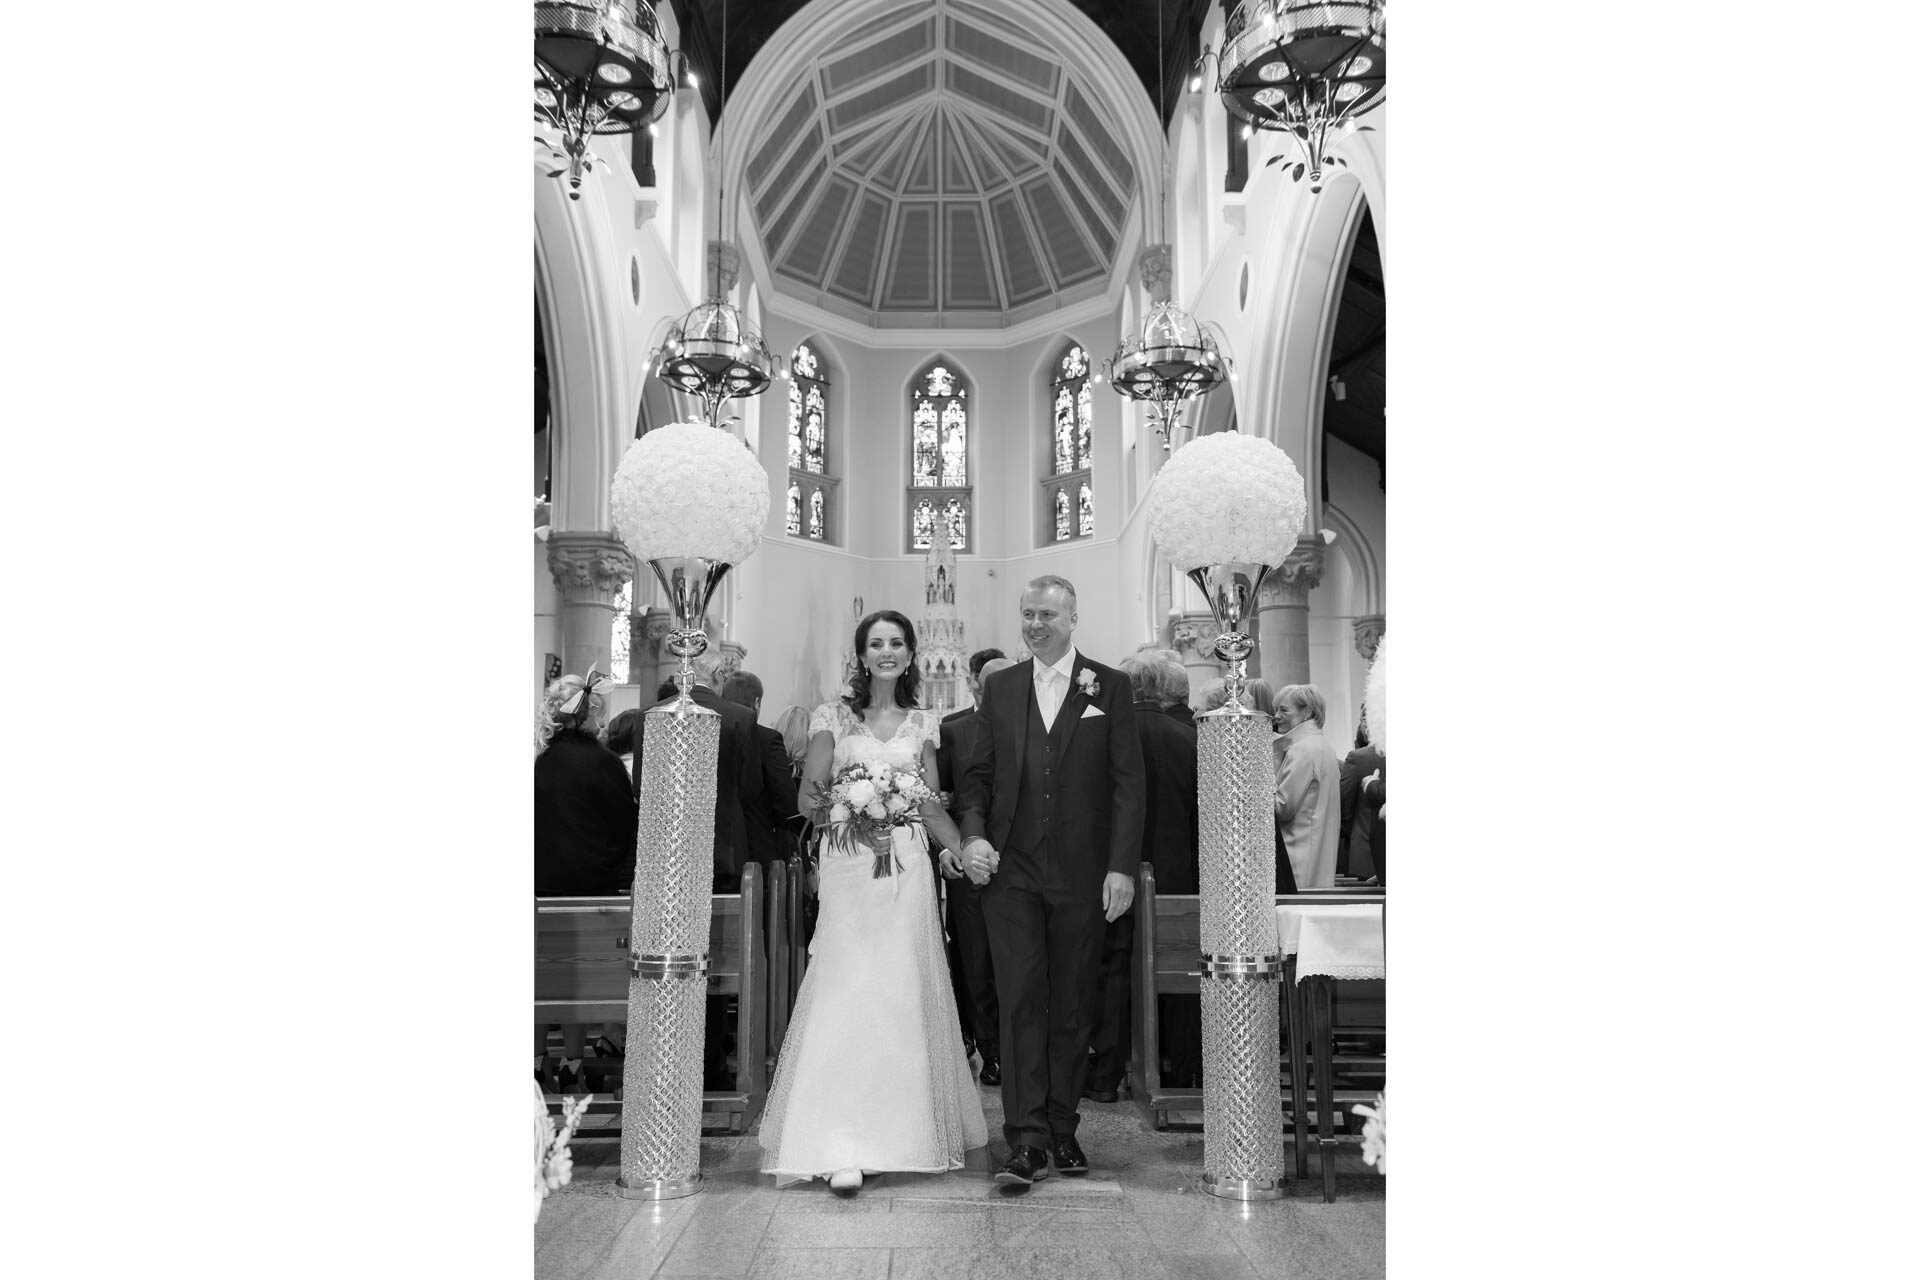 Picture of Vania and Robert at St. Michael's Church on their wedding day, captured by Fermanagh, Tyrone and Northern Ireland Wedding Photographer, Trevor Lucy Photography